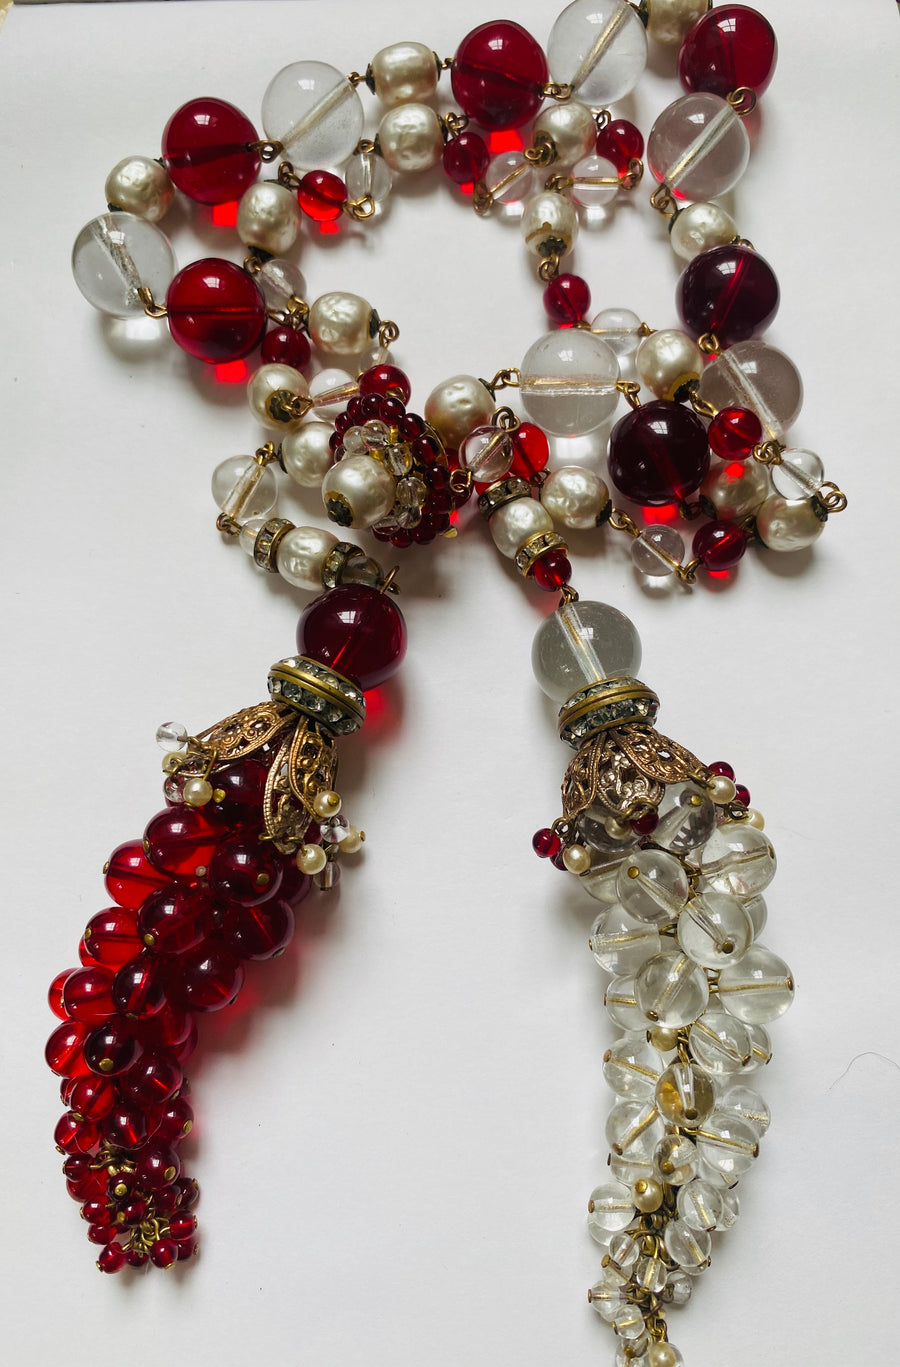 Chanel 1930's rare necklace and earrings